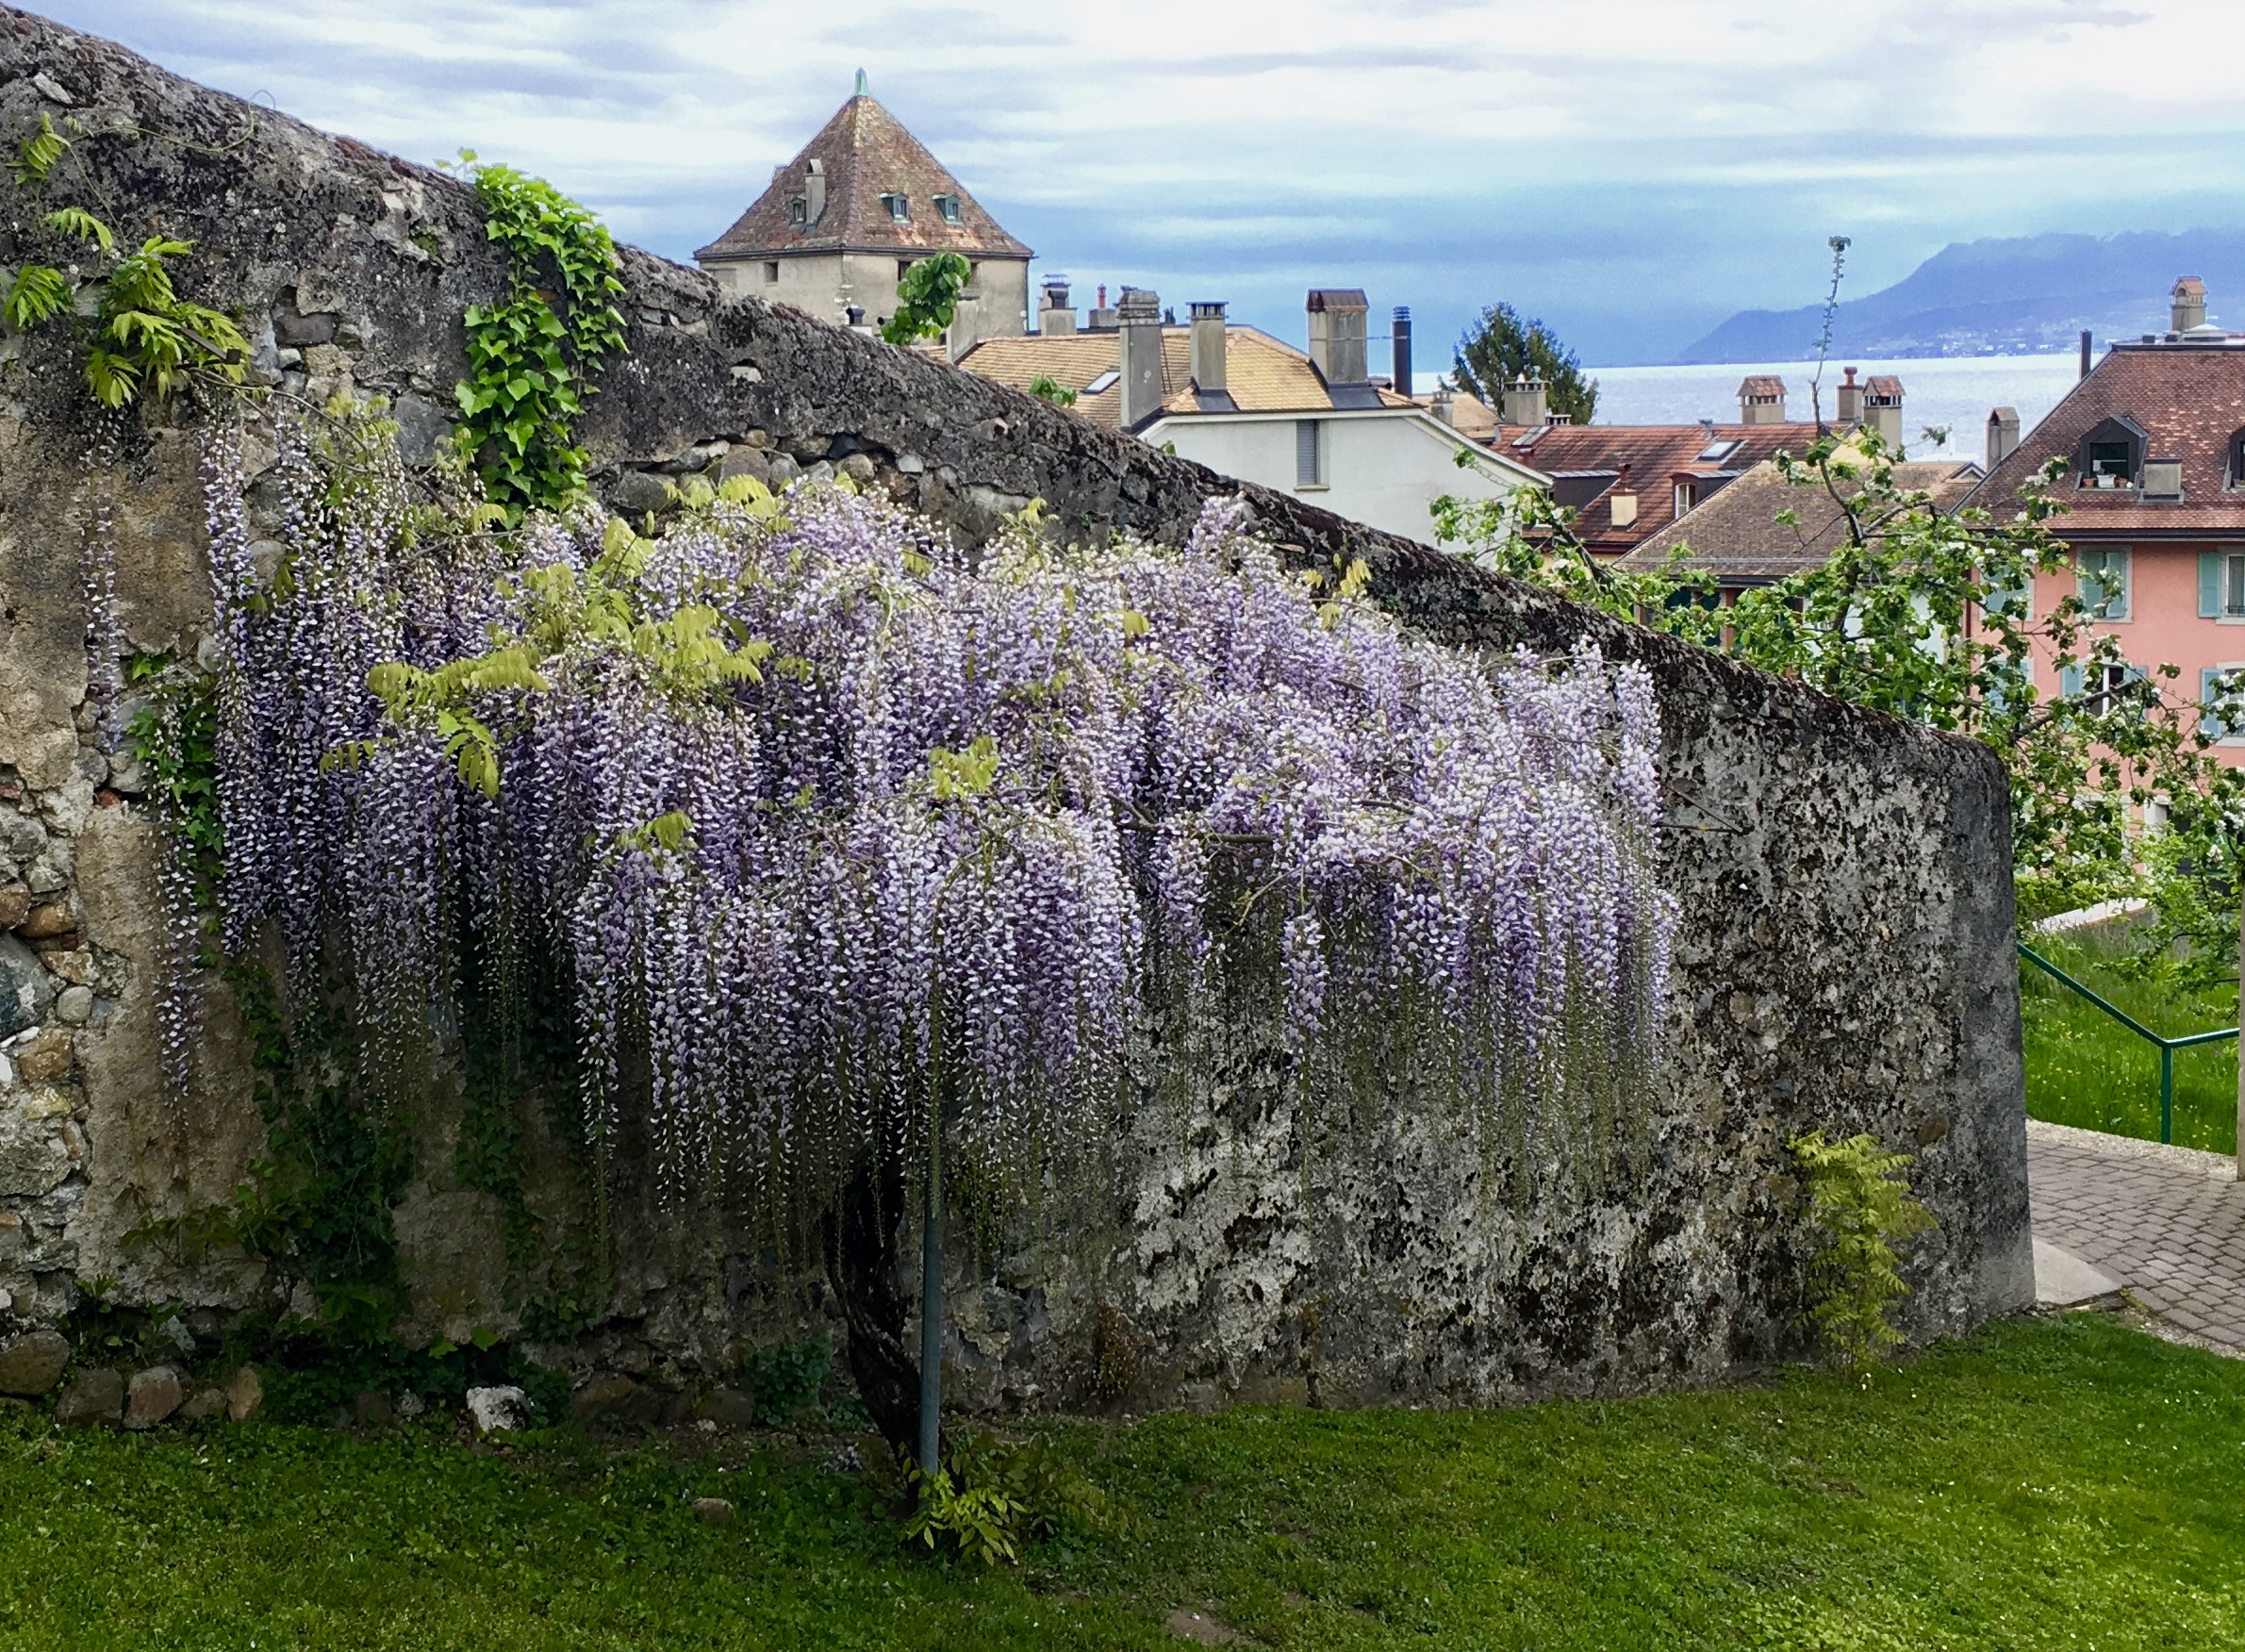 A stunning wisteria in the charming village of Nyon, Switzerland, on the northern shore of Lake Geneva.